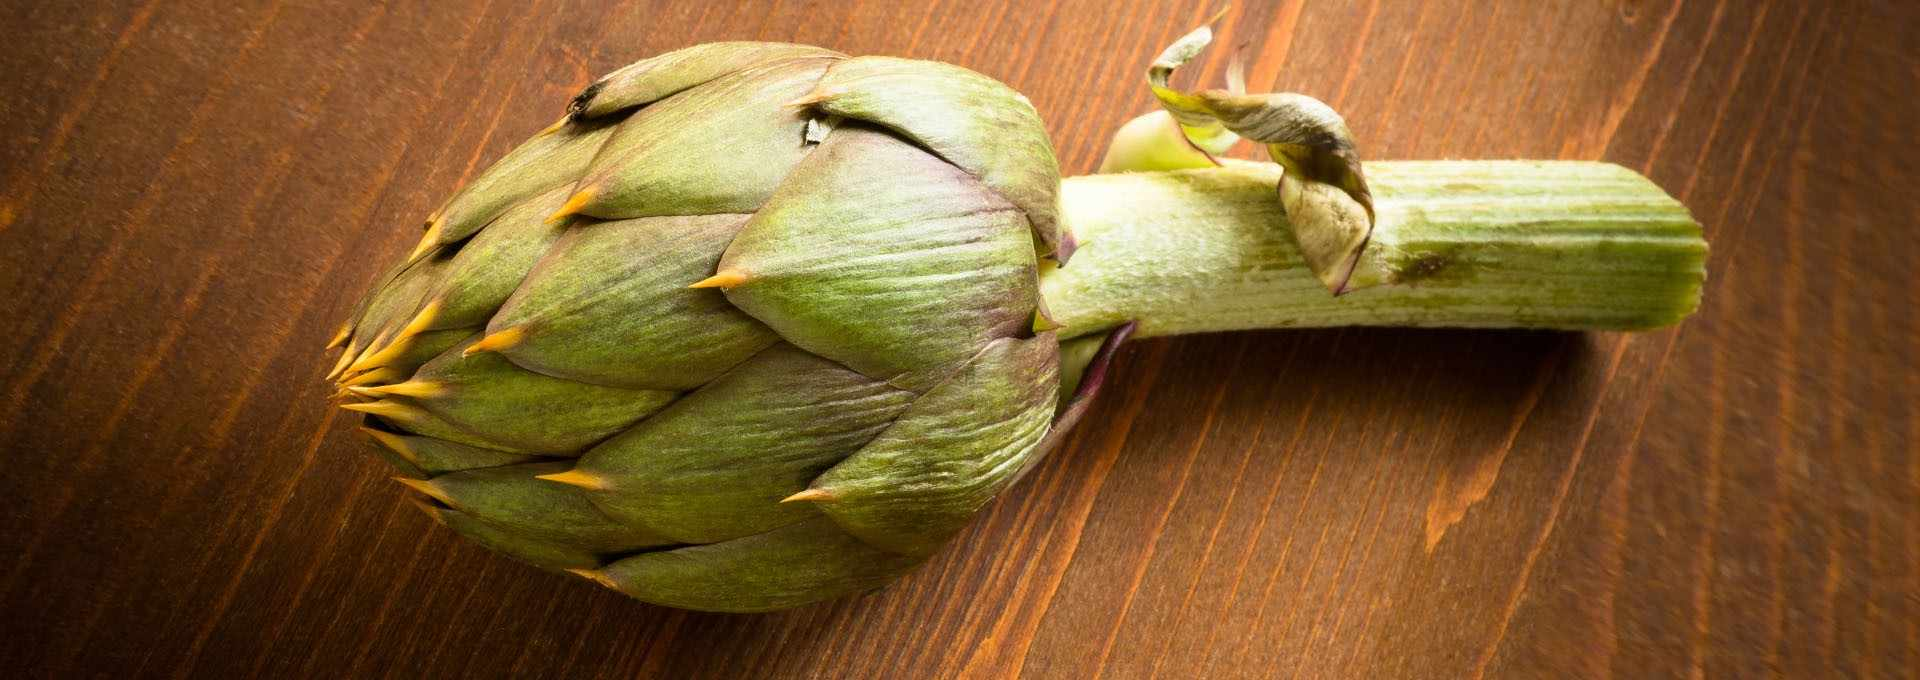 The Prickly, Yet Tender Artichoke of Sardinia